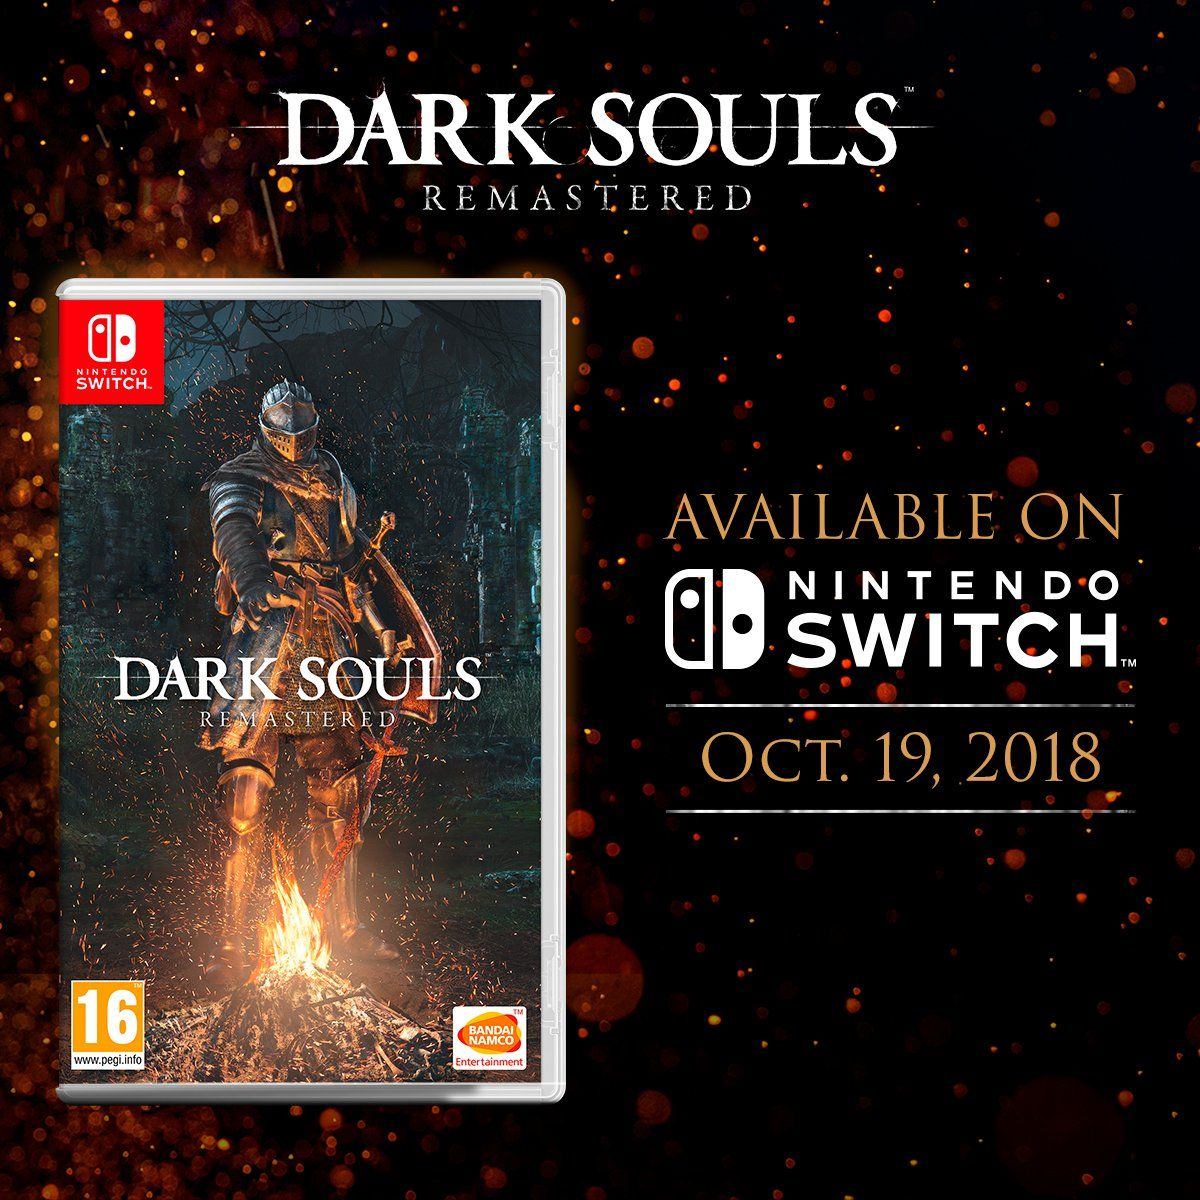 Dark Souls Remastered (and Solaire of Astora amiibo) now releasing